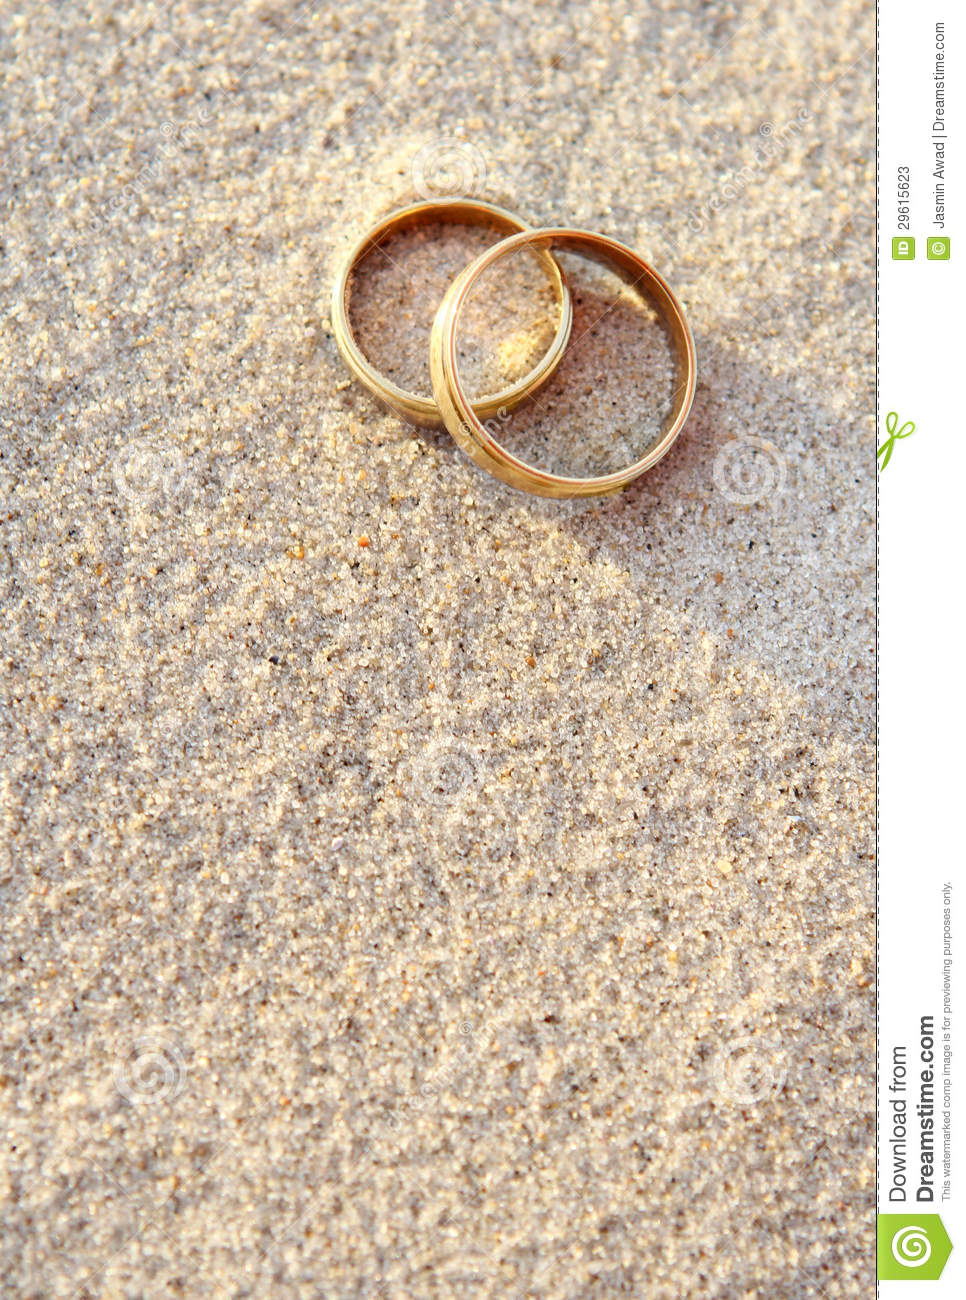 to want public made i beach you buy ocean ring wave engagement custom rustic band wedding so a inspired rings attachment if